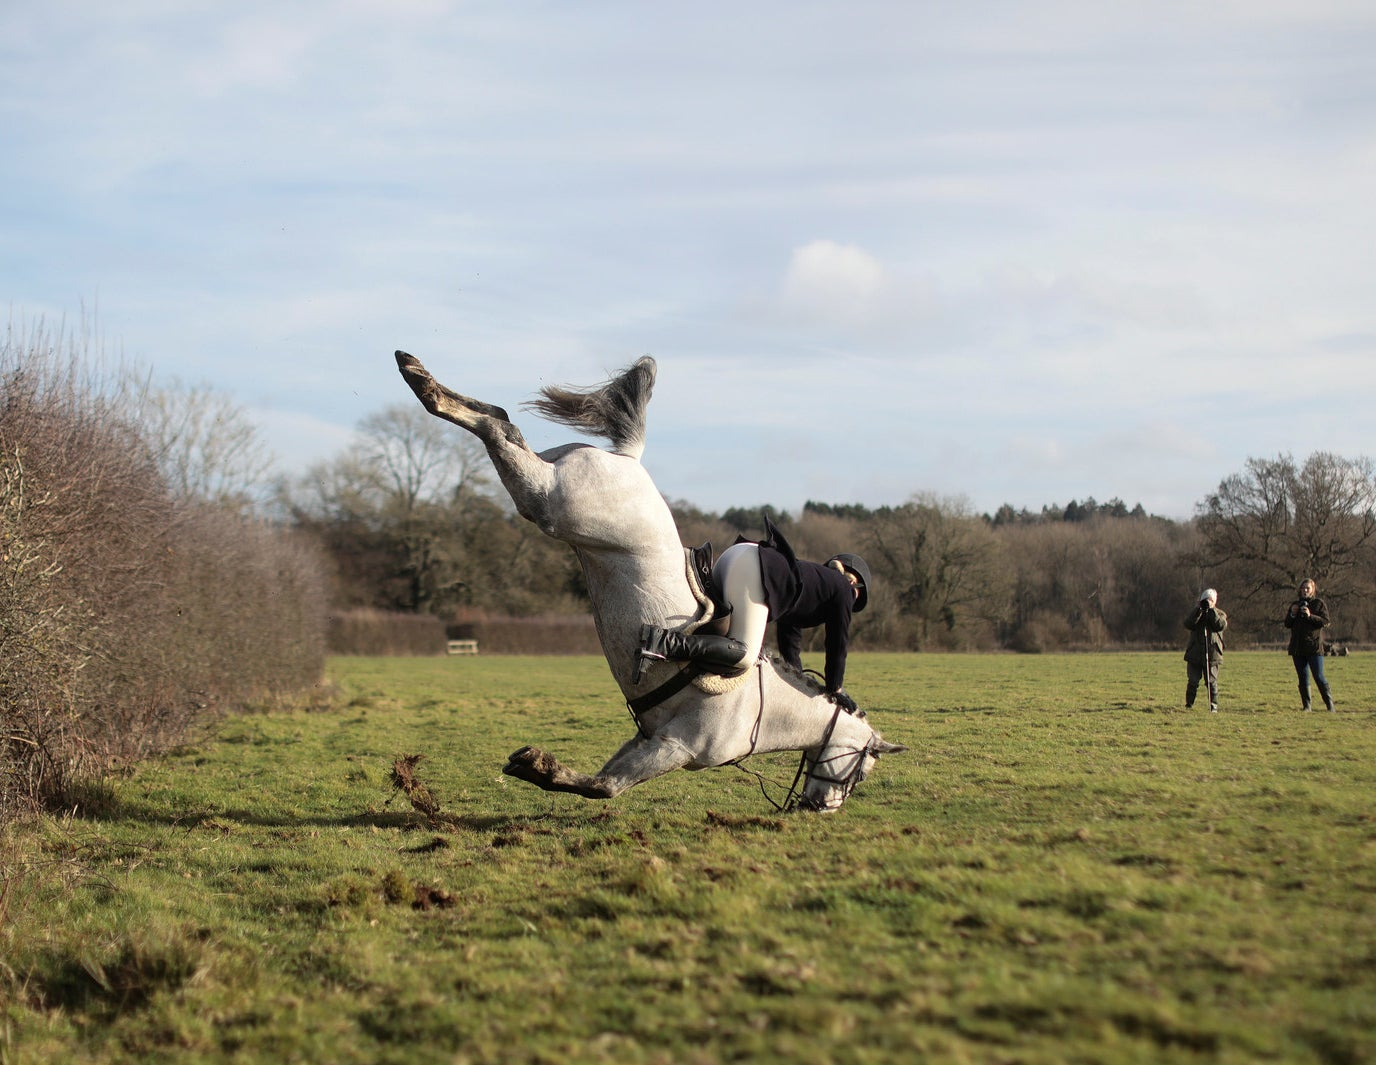 A huntswoman crashes as she jumps a fence during the annual Boxing Day hunt in Chiddingstone, Britain, on Dec. 26.